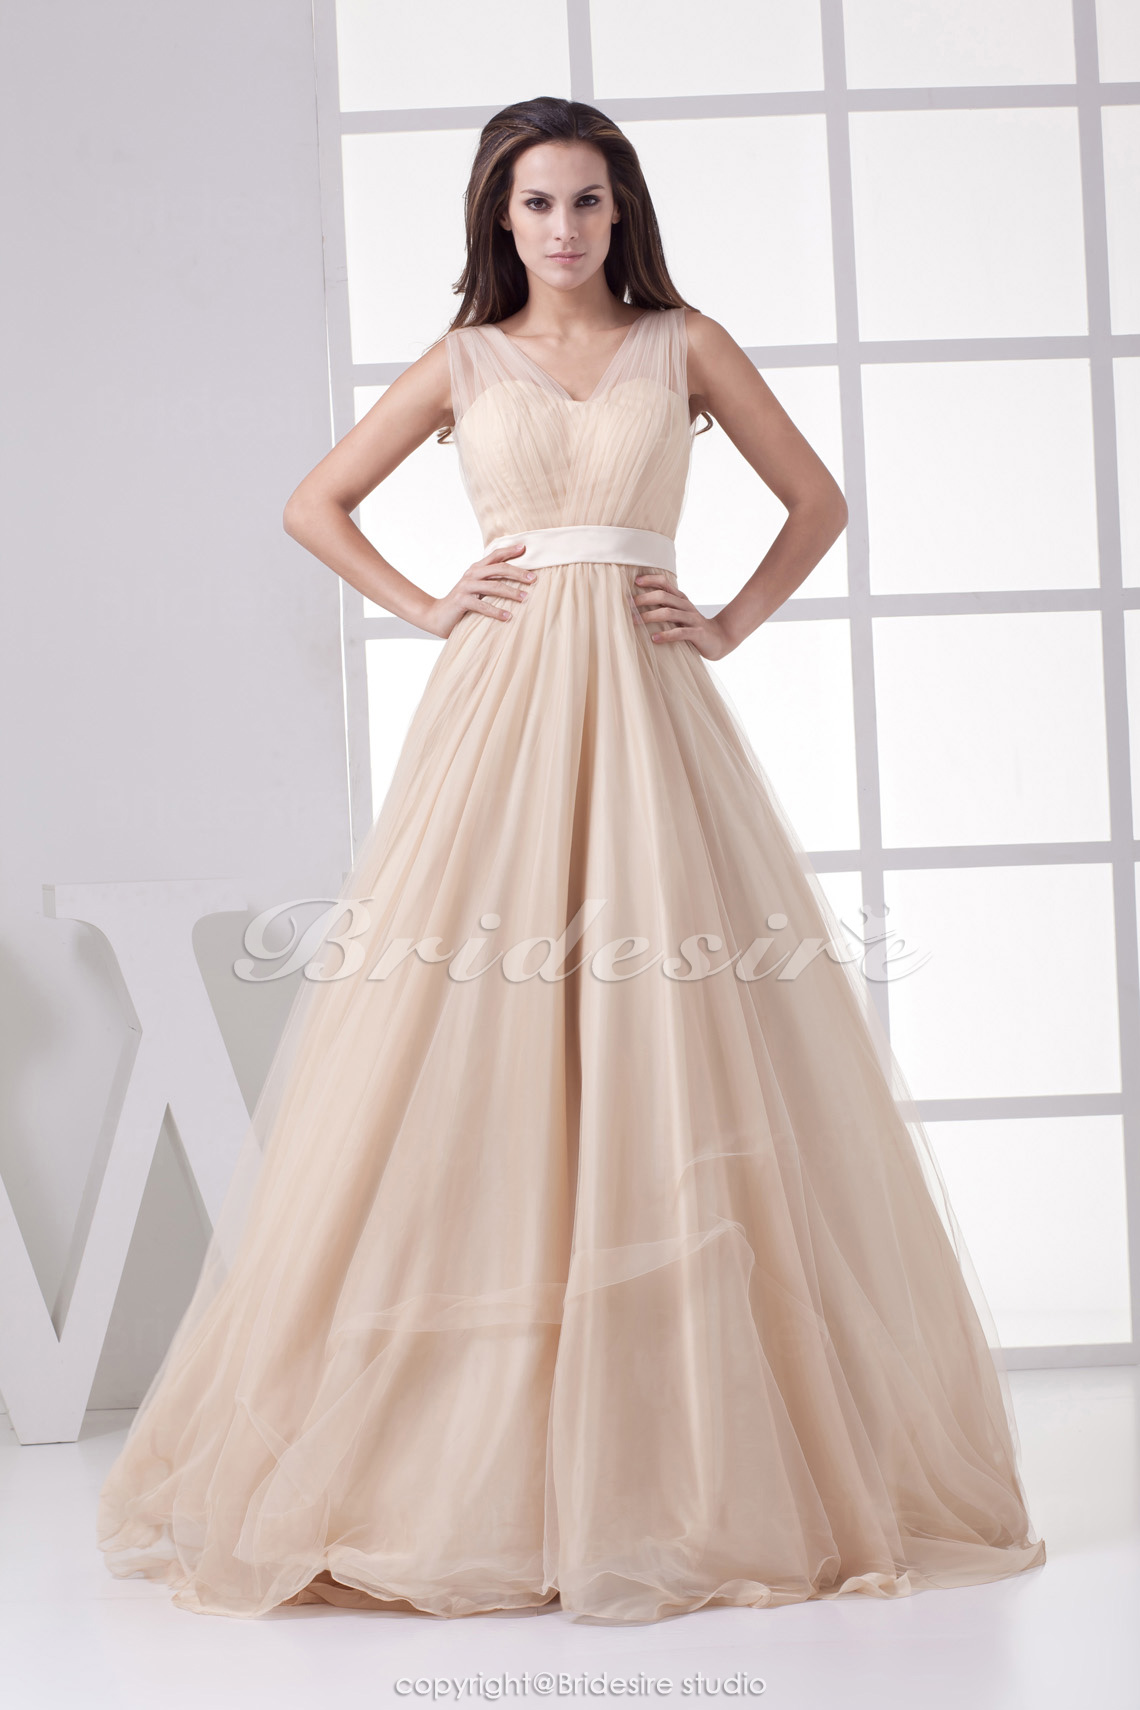 A-line V-neck Floor-length Sleeveless Tulle Dress